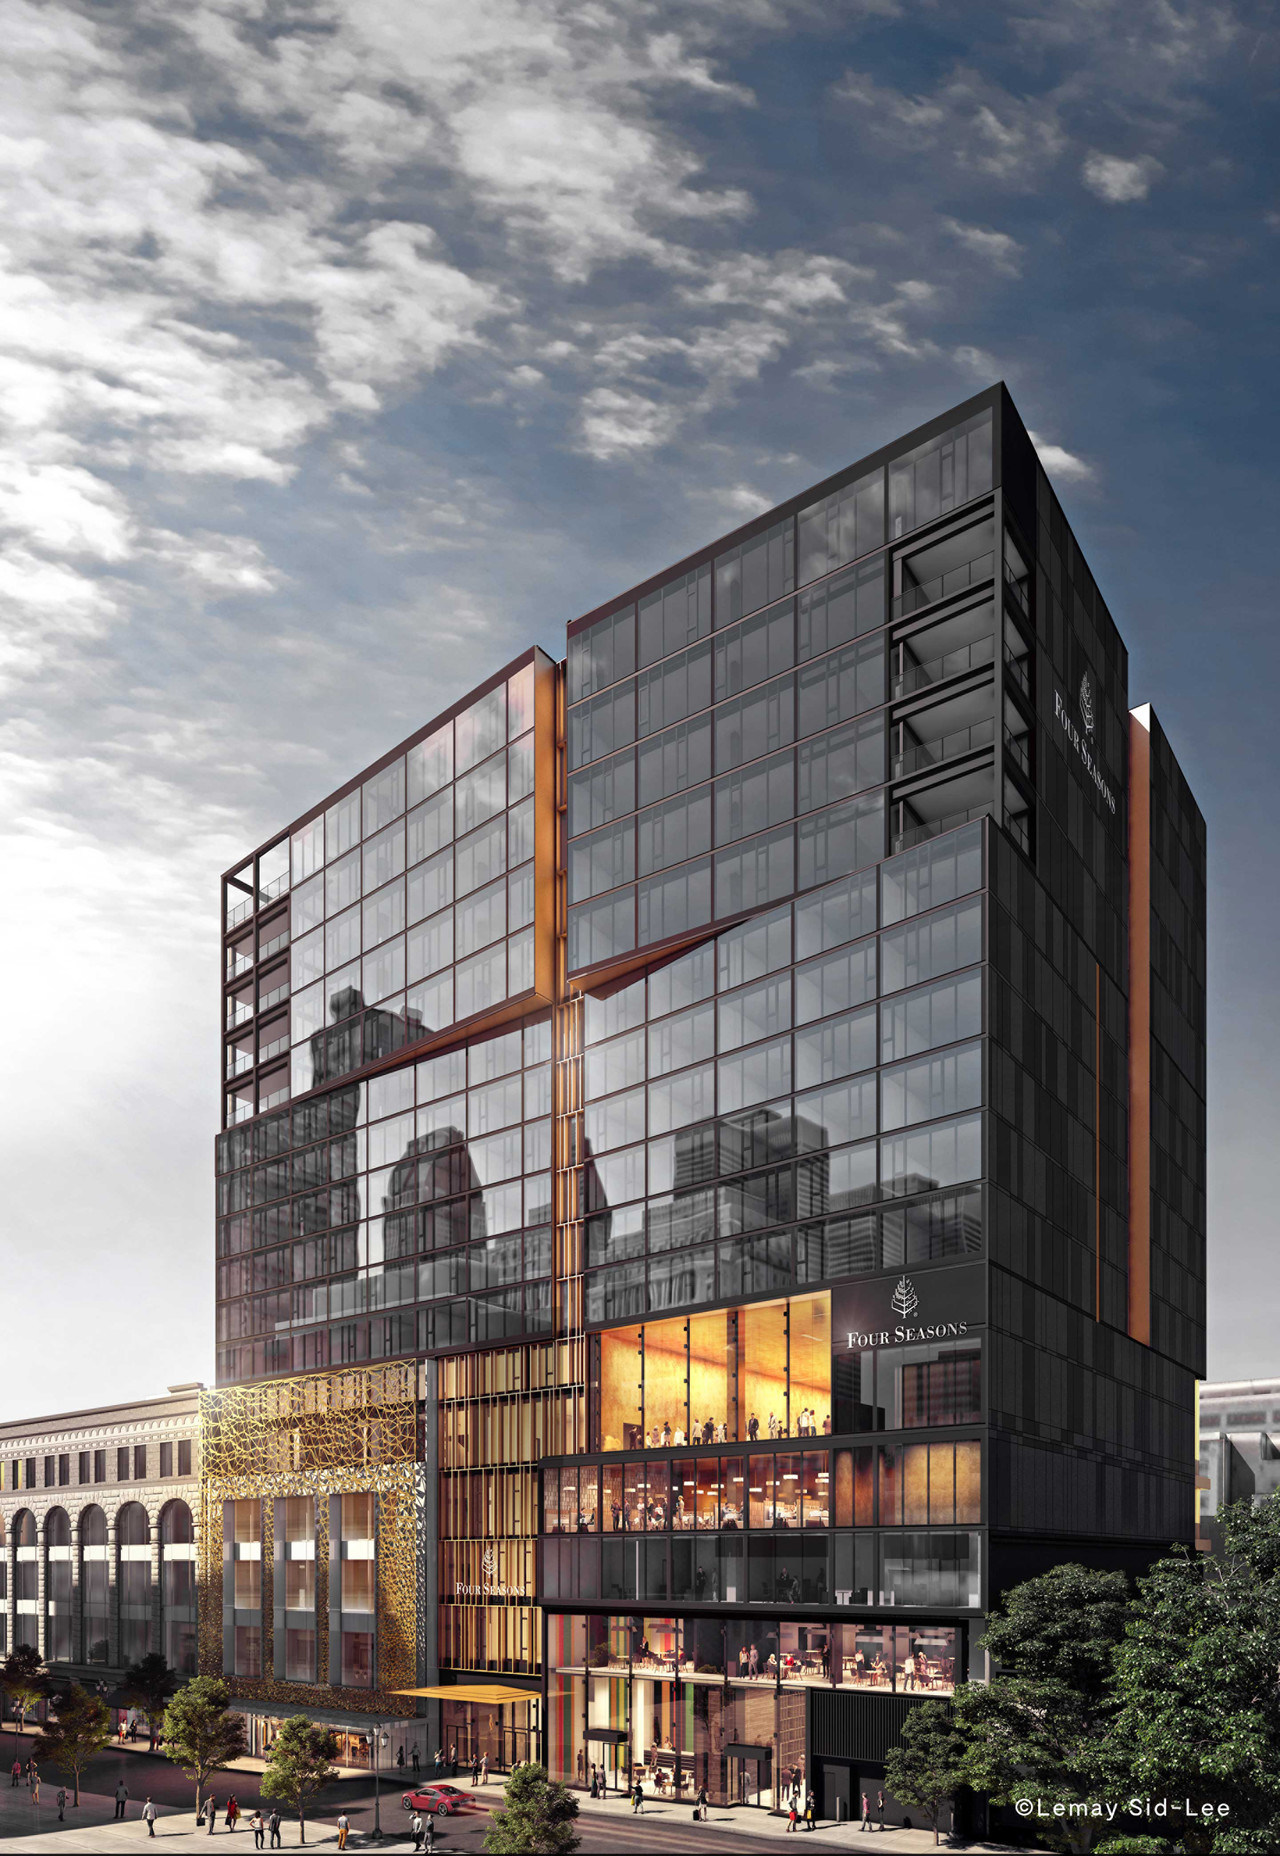 Montreal's new Four Seasons Hotel to open this spring